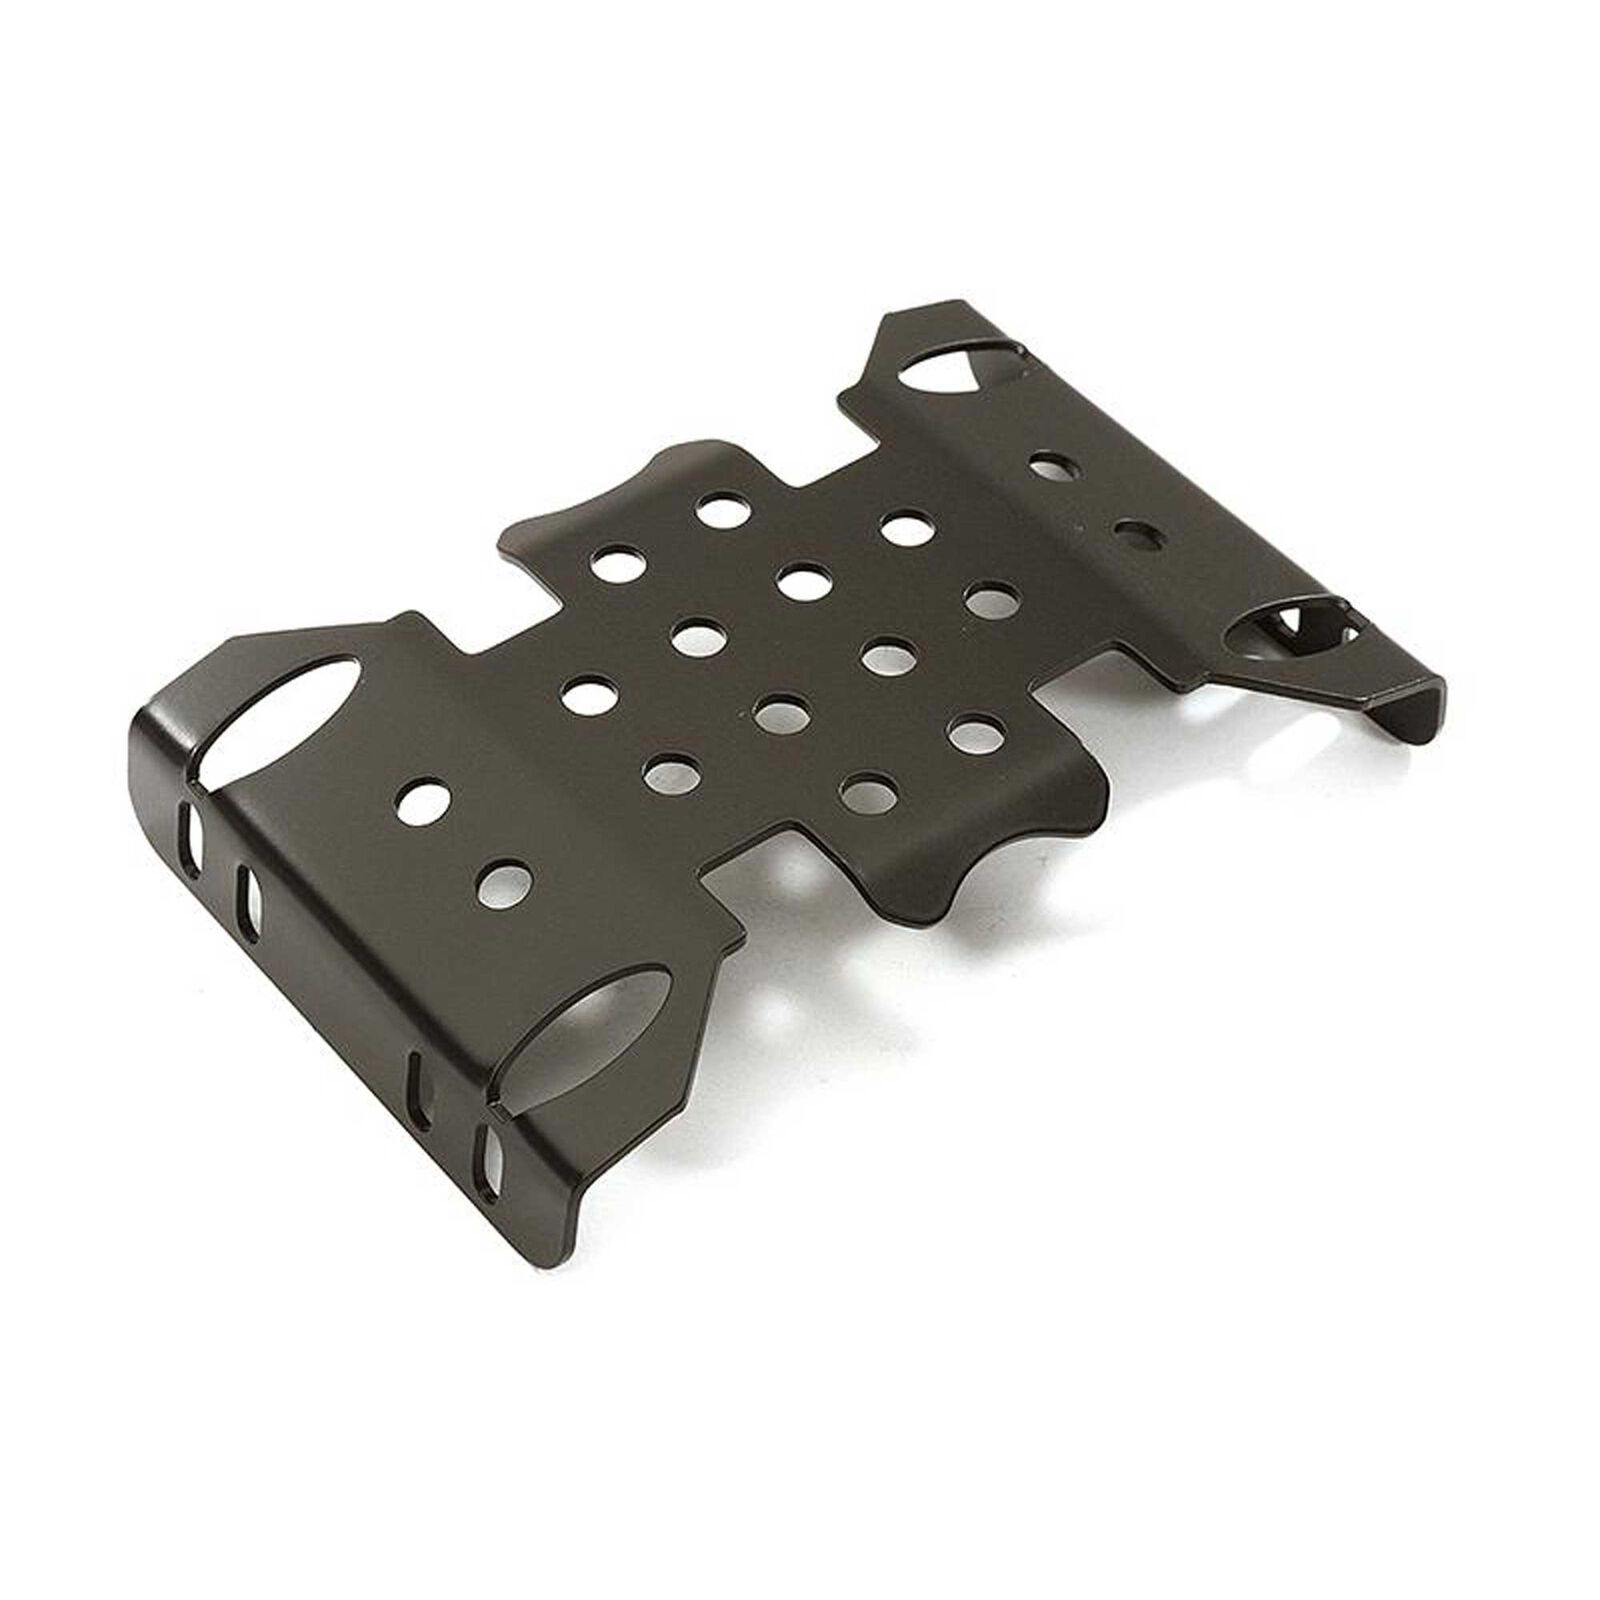 Metal Protection Center Skid Plate: SCX10 II